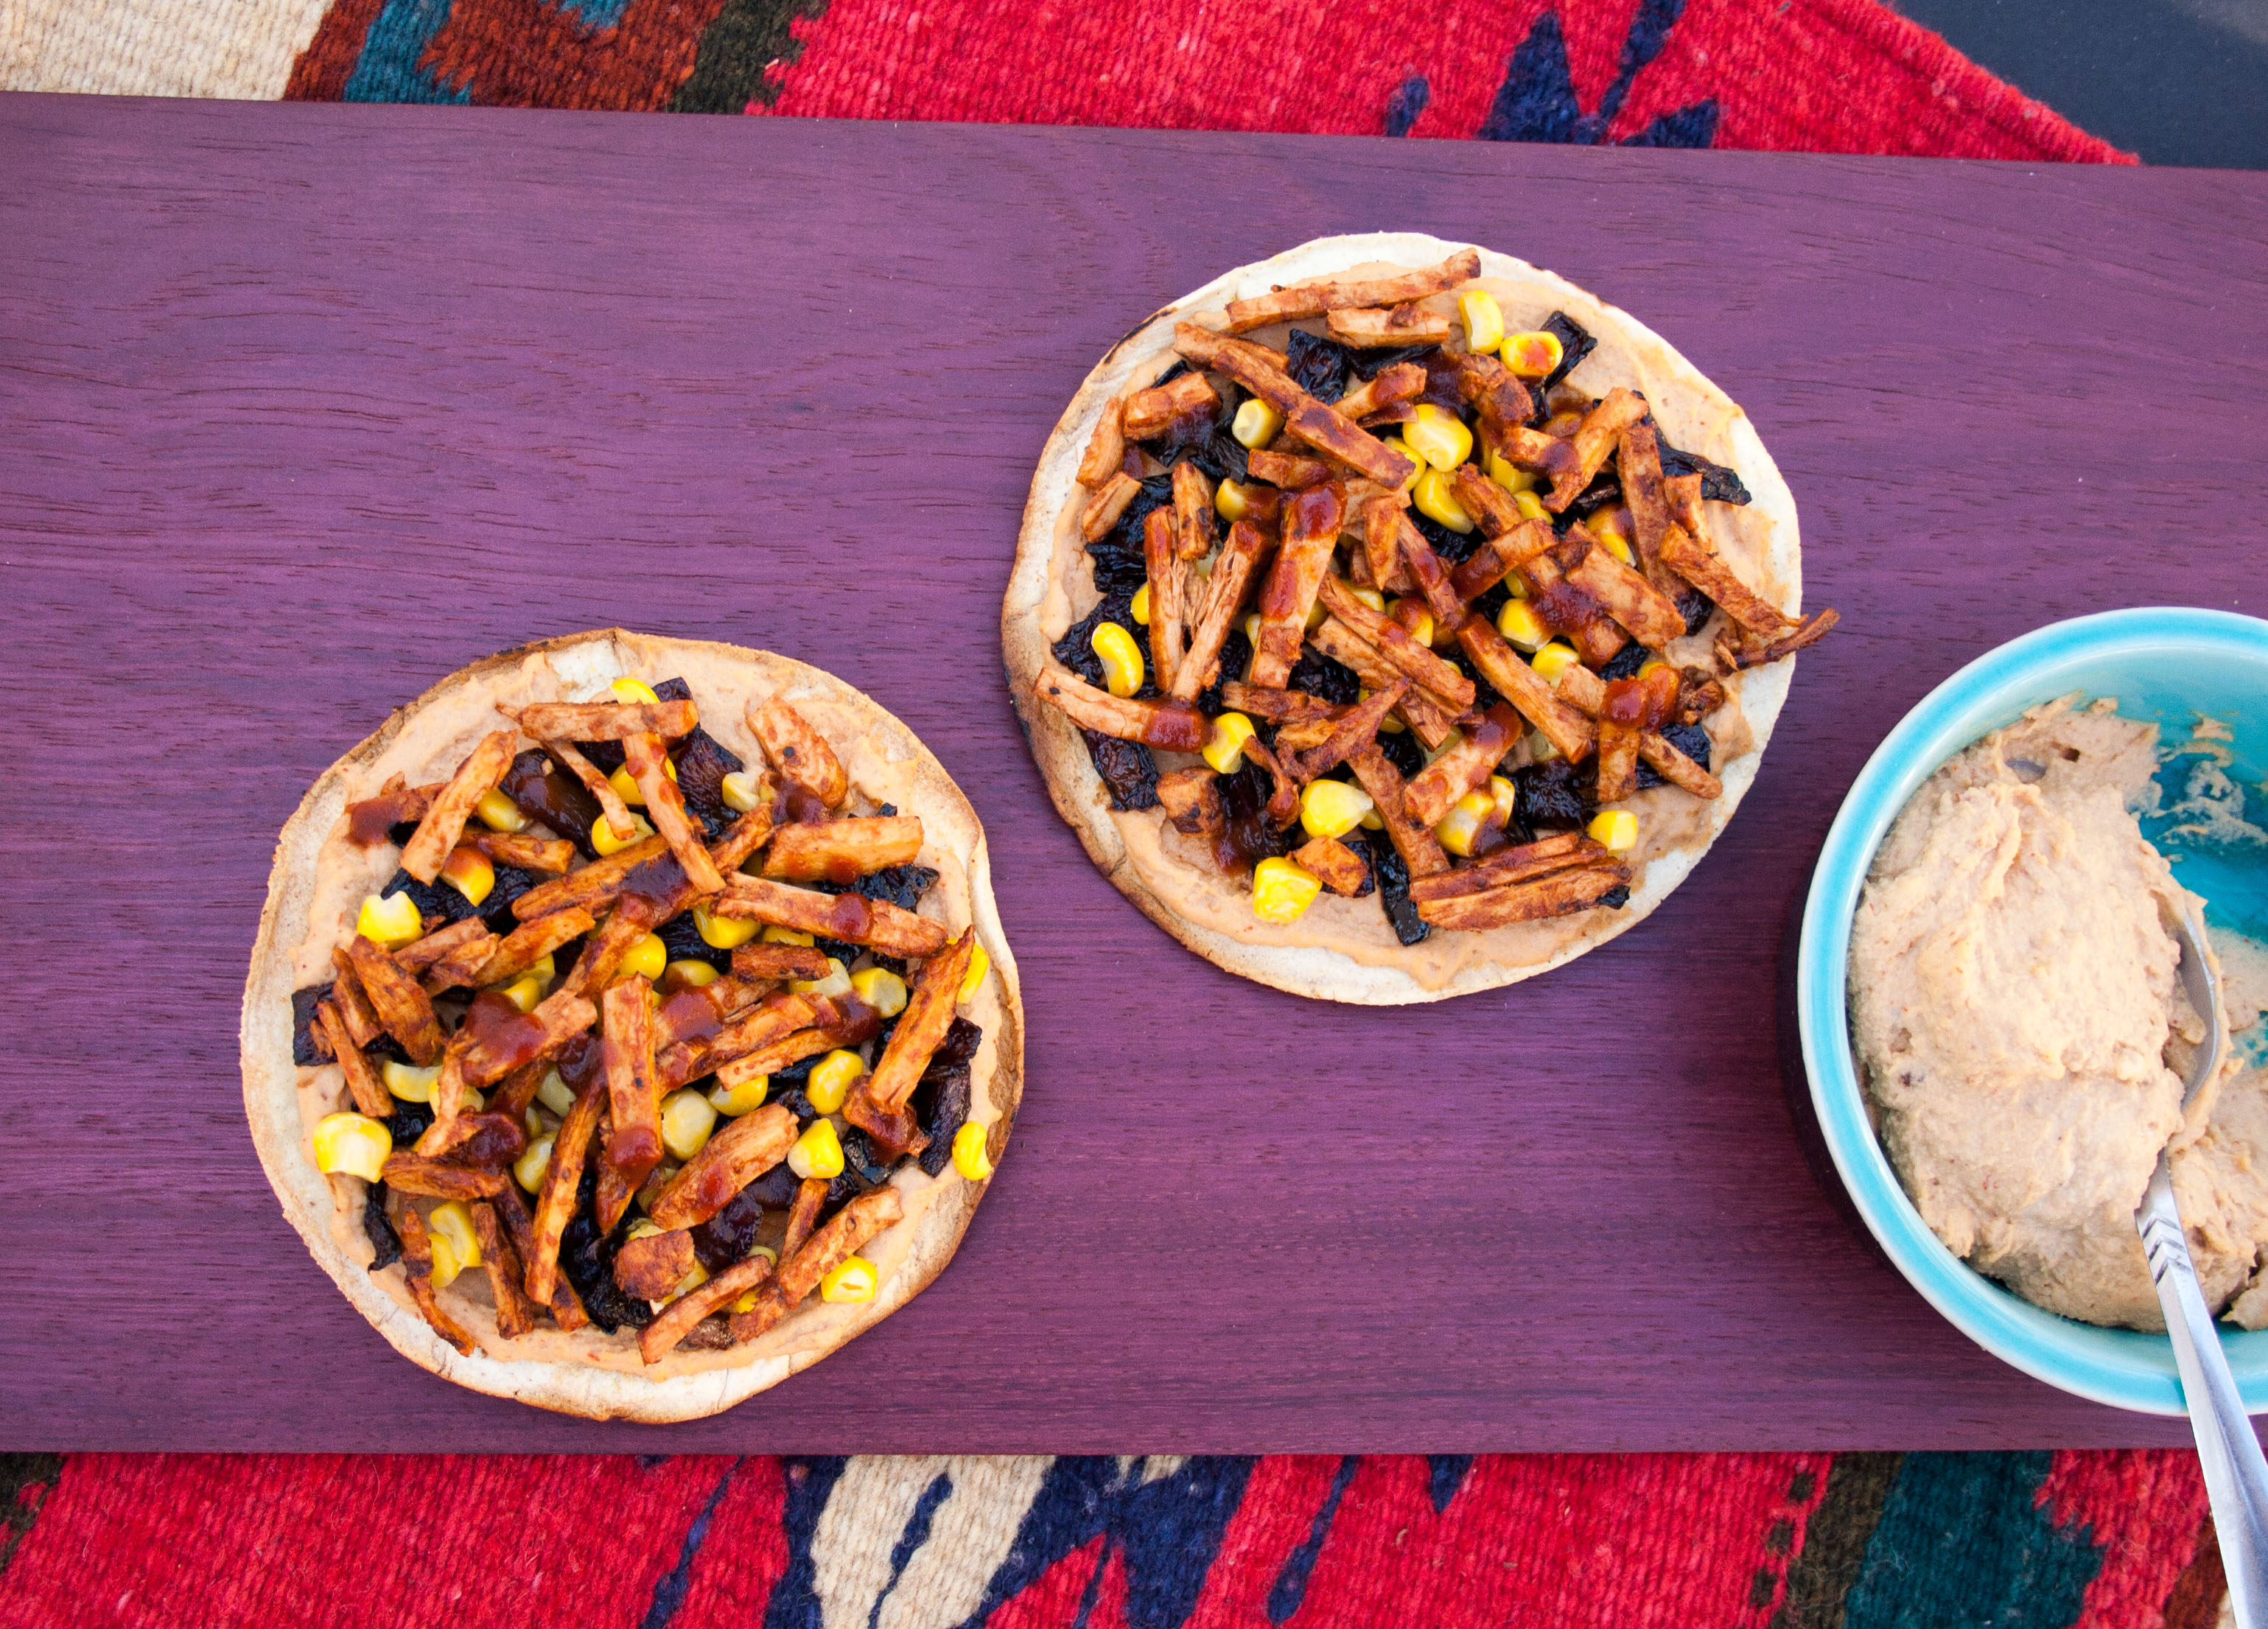 Vegan BBQ Tostadas with Chipotle Hummus and Caramelized Onions birds eye view.